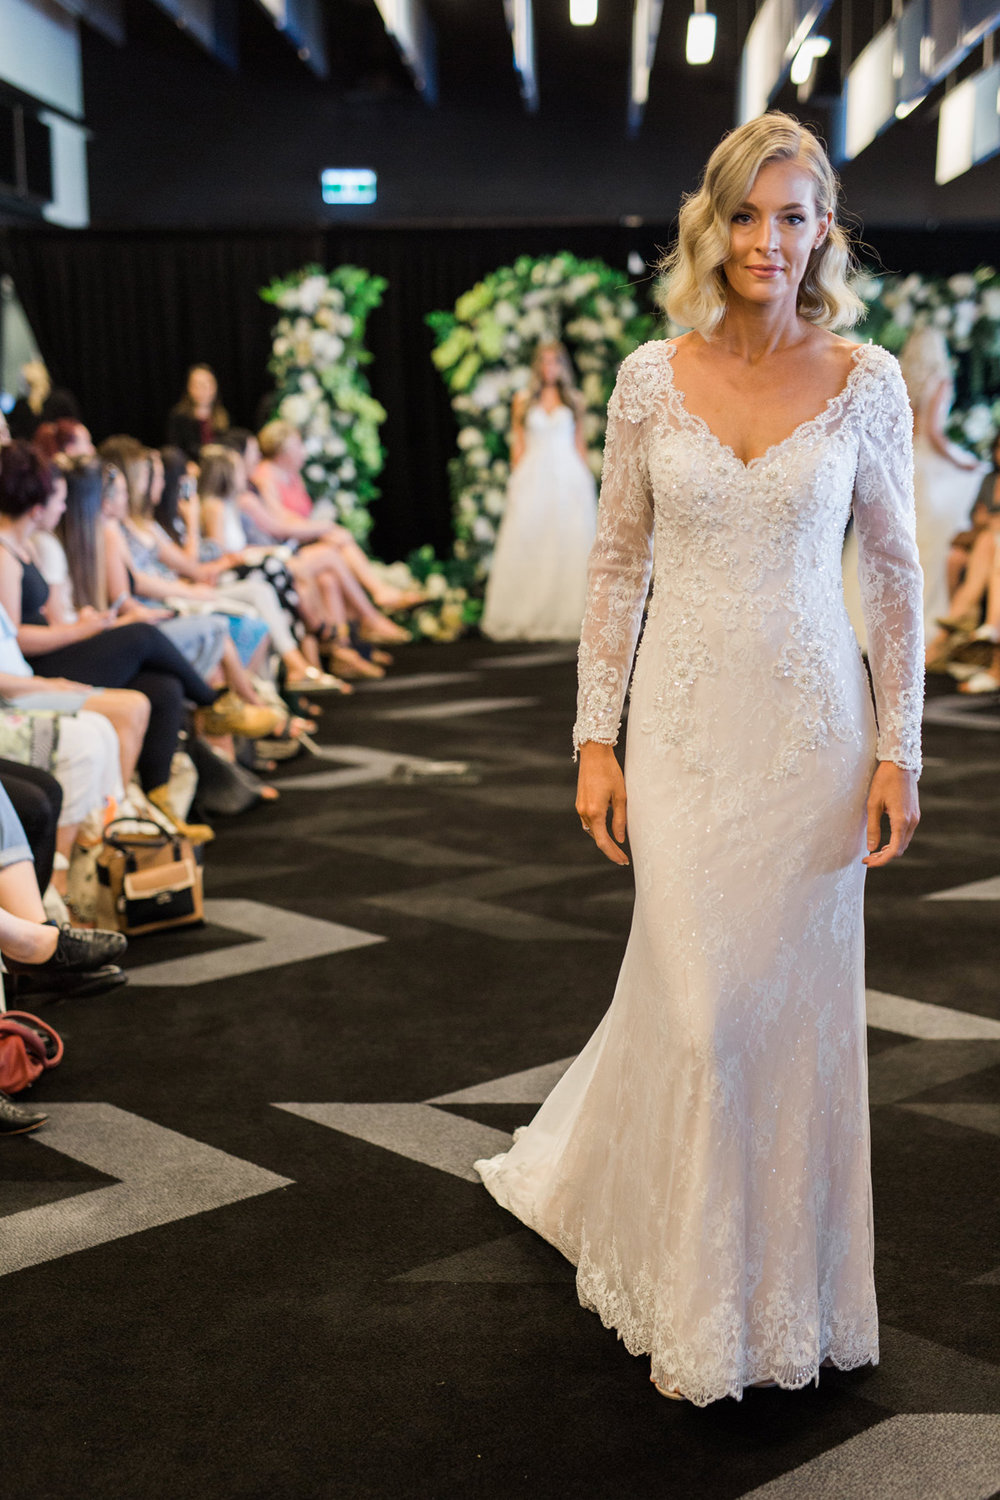 Love-Wedding-Festival-Sydney-Wedding-Gown-Jean-Fox-Bridal-11.jpg